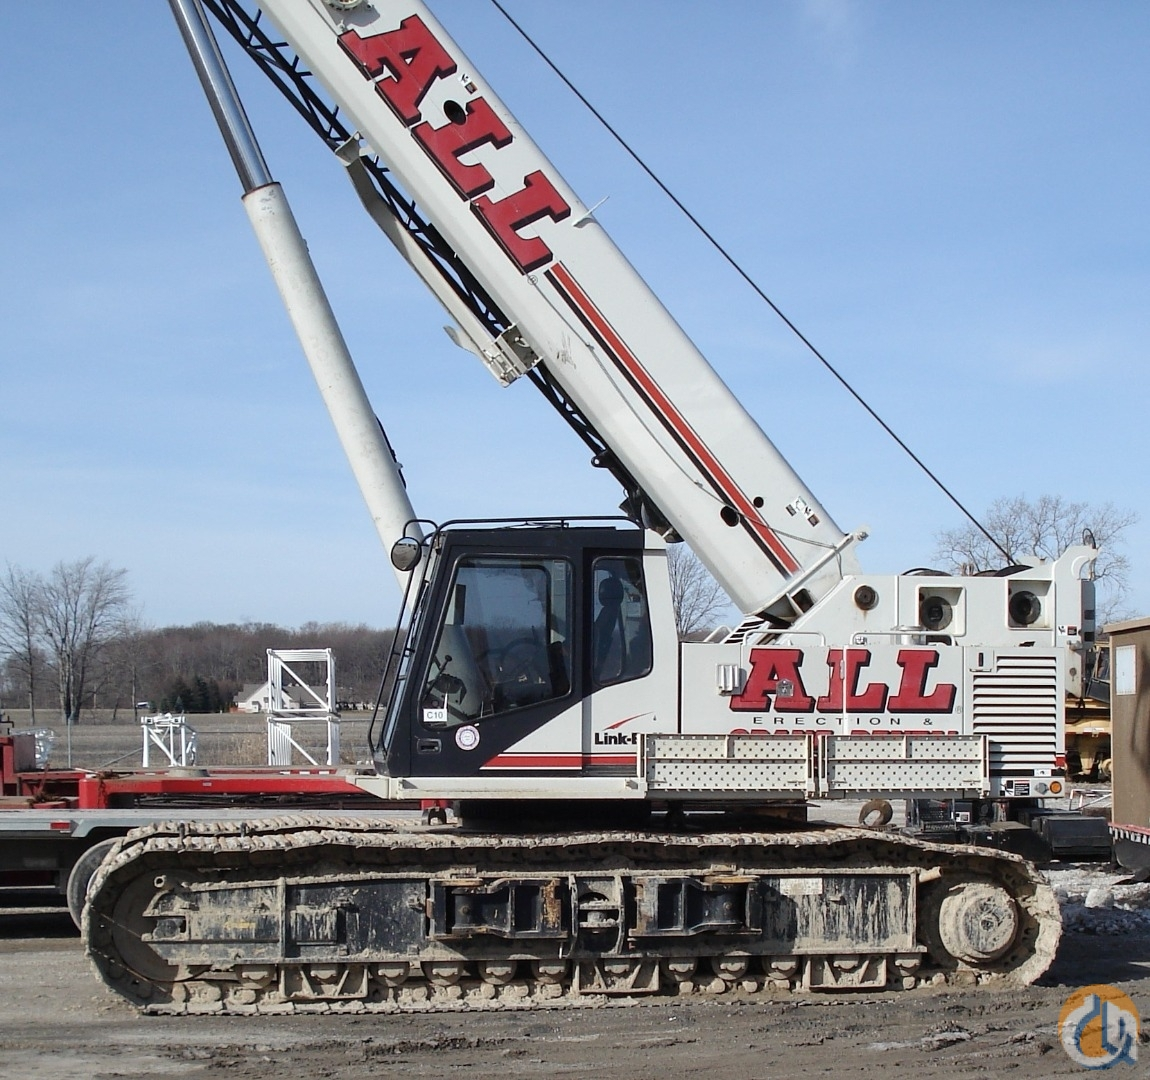 Link-Belt TCC750 For Sale Crane for Sale in Columbus Ohio on CraneNetwork.com